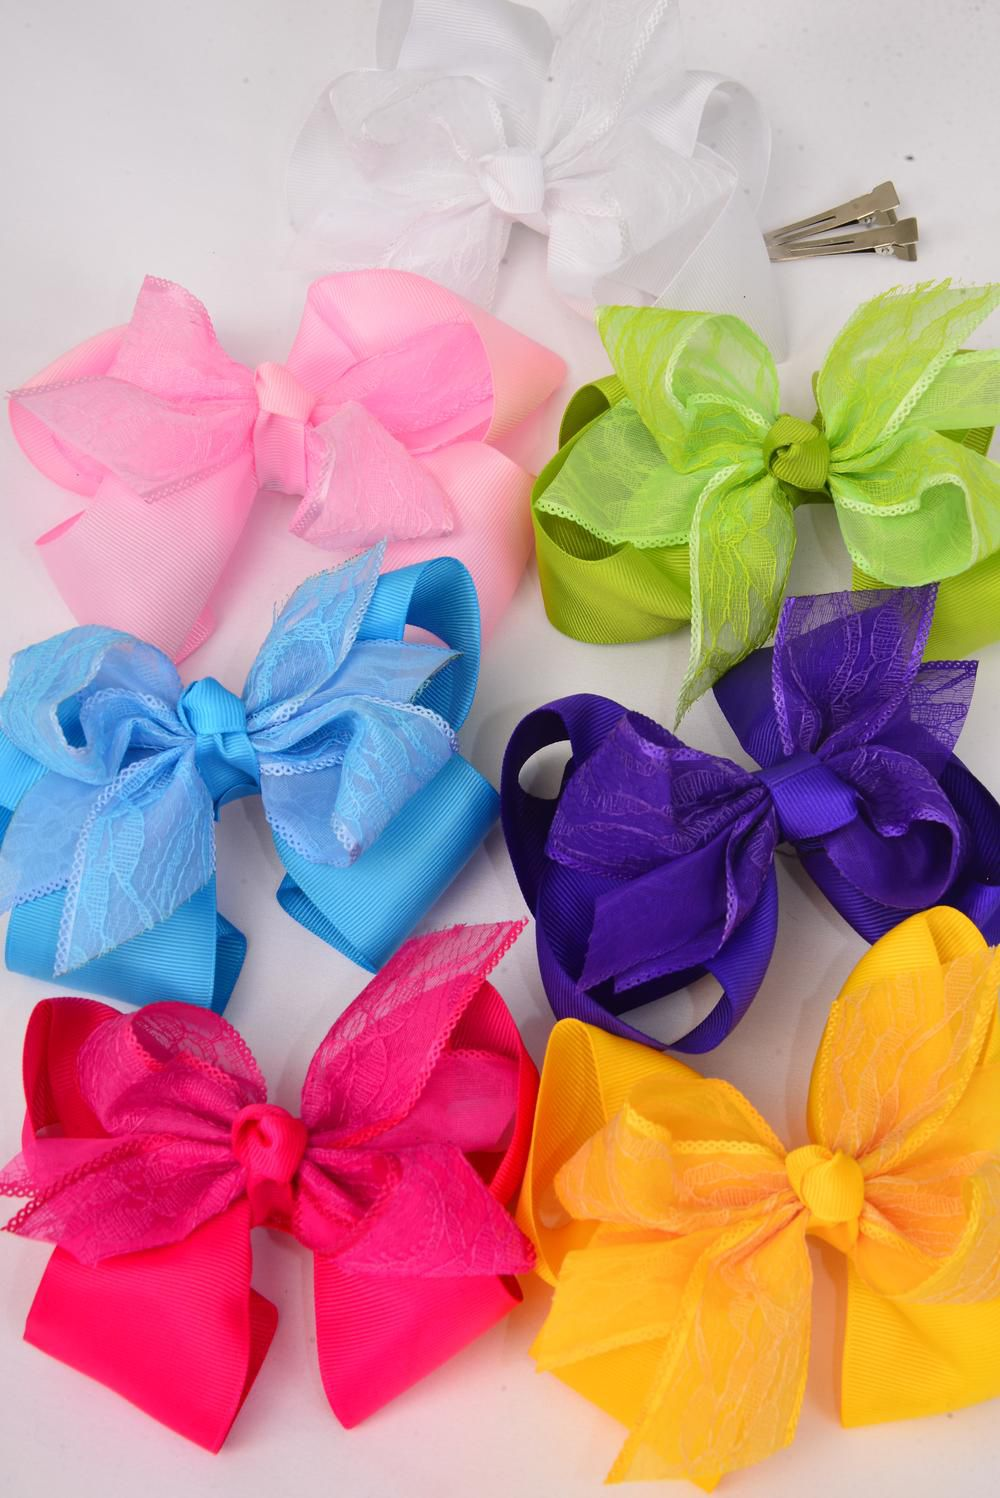 "Hair Bow Large Double Layer Lace Bowtie Alligator Clip Grograin/DZ **Citrus** Alligator Clip,Size-6""x 5"" Wide,2 White,2 Yellow,2 Blue,2 Fuchsia,2 Purple,1 Baby Pink,1 Lime,7 Color Asst,UPC Code,Clear Strip"